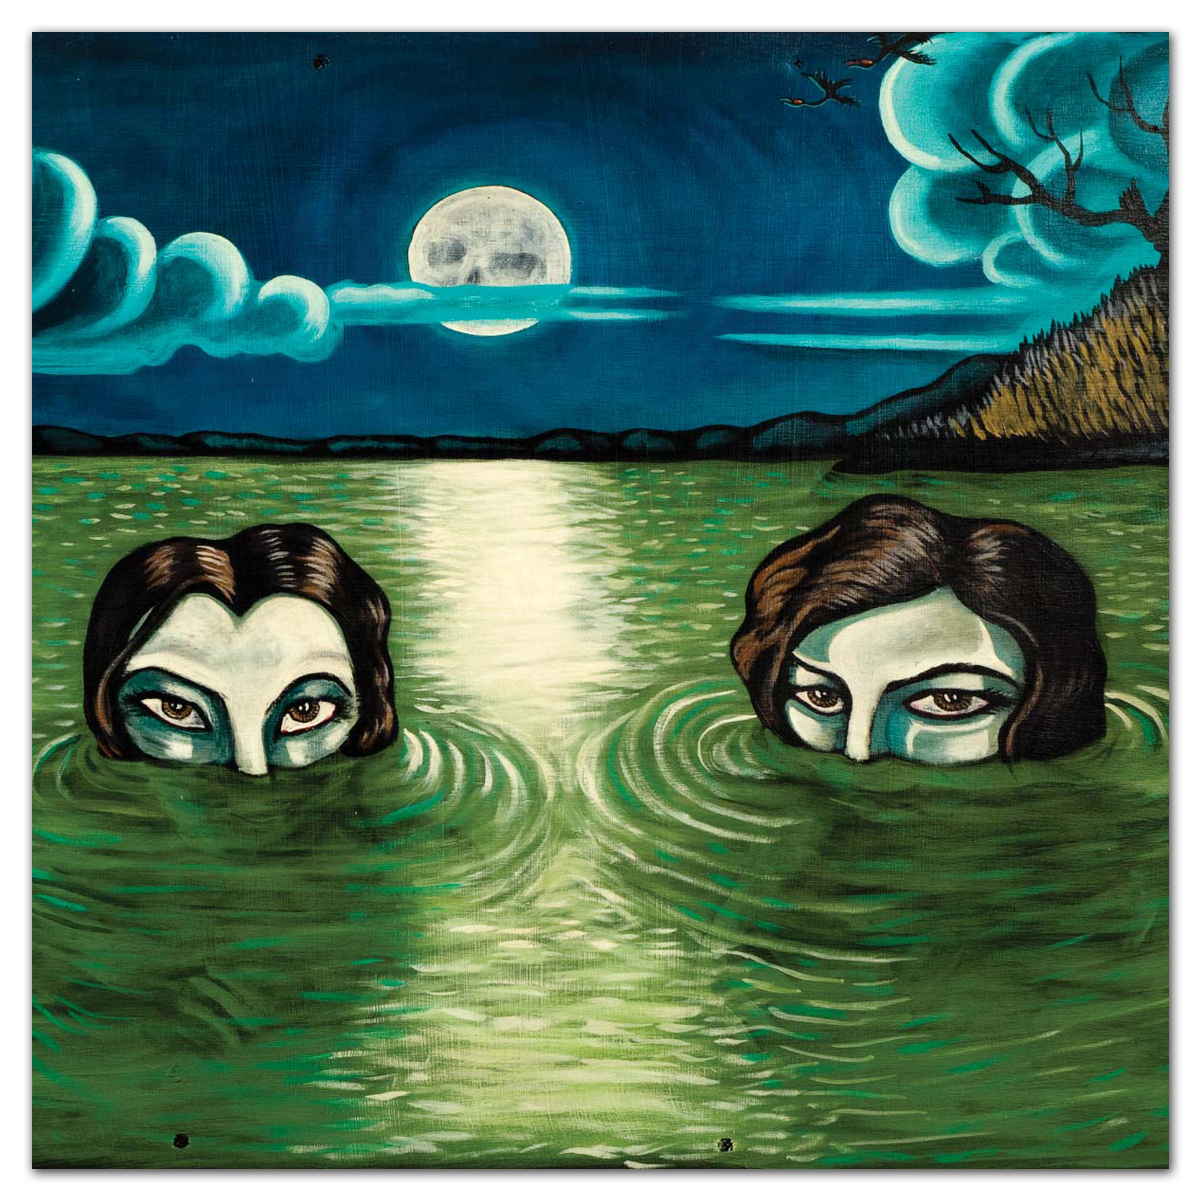 new music mondays: the drive-by truckers edition;